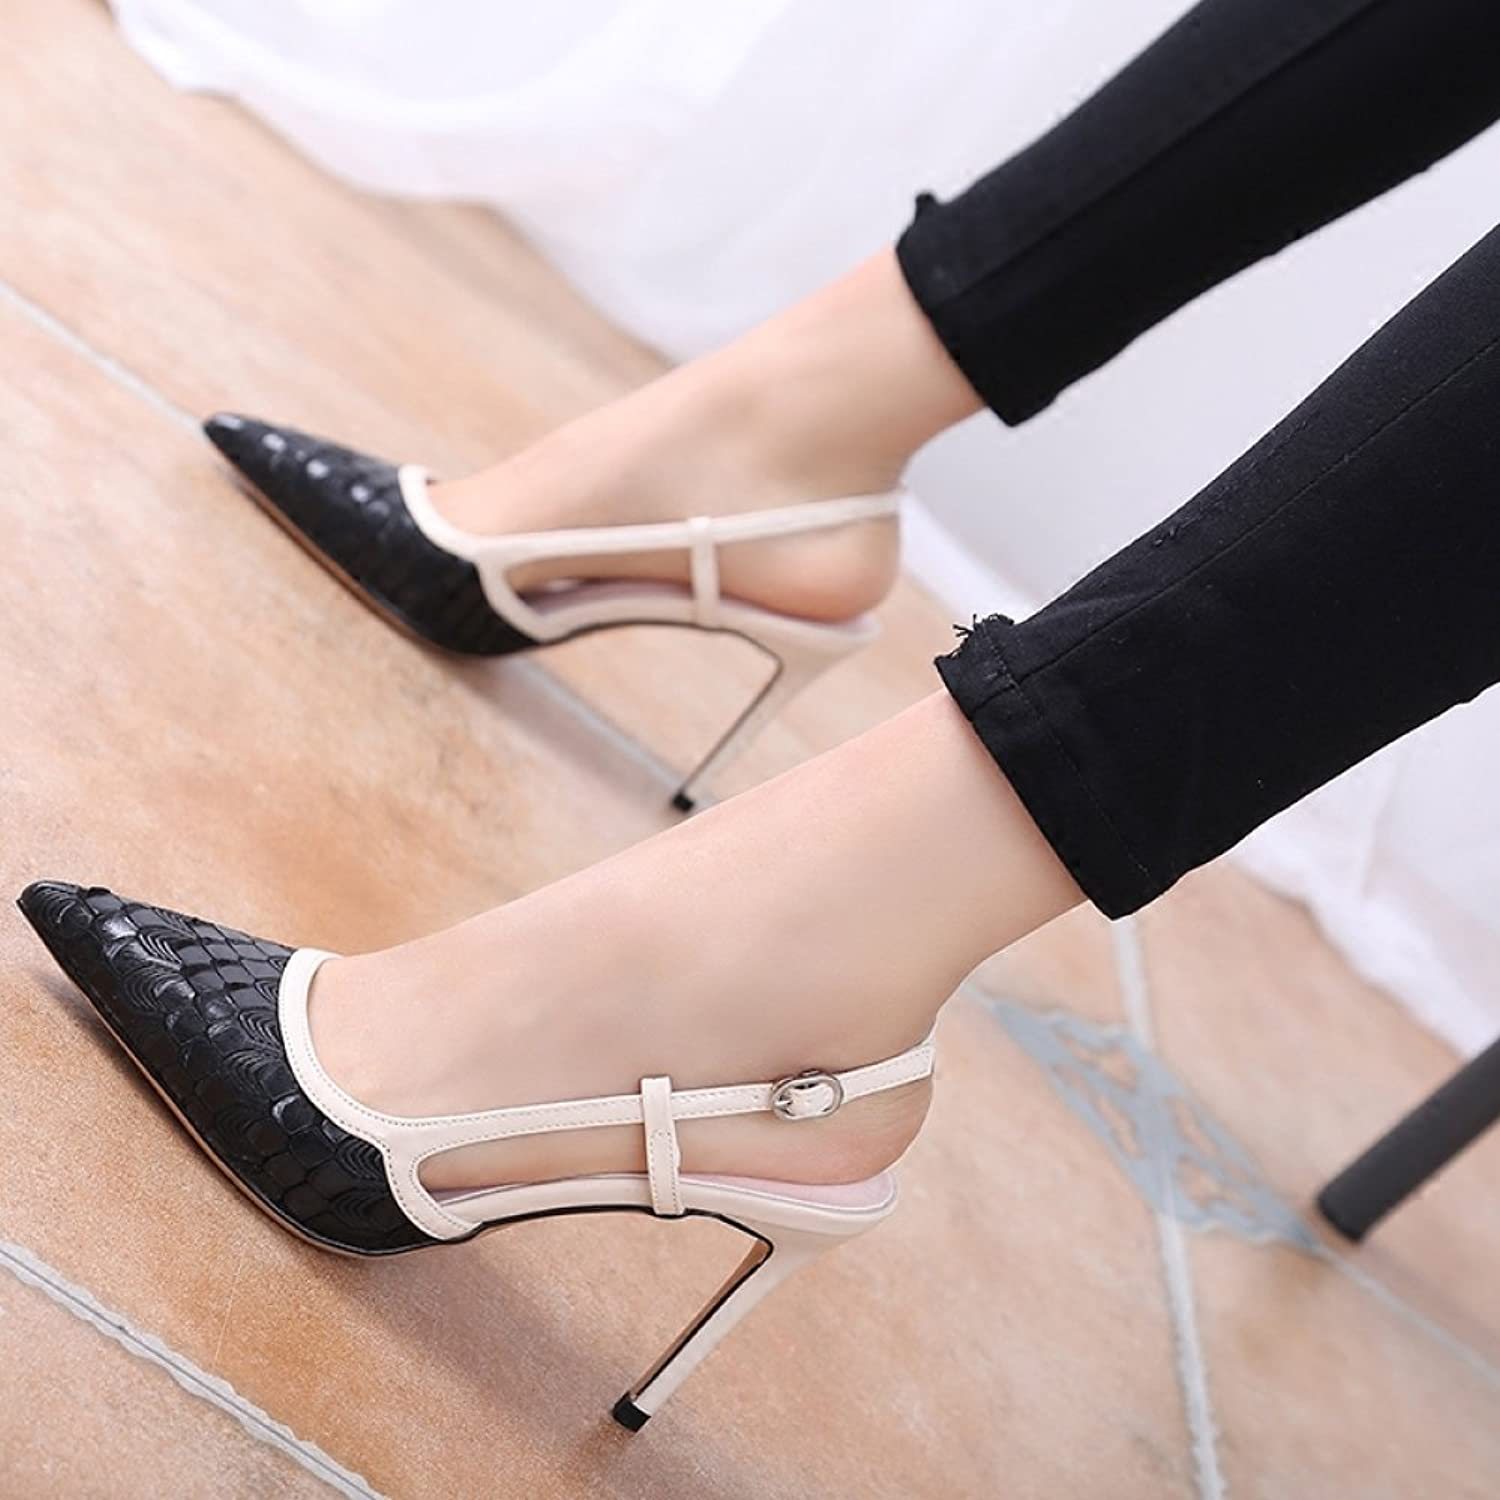 WLG Onestop buckle with serpentine leather pointed highheeled shoes wild new summer fashion shoes